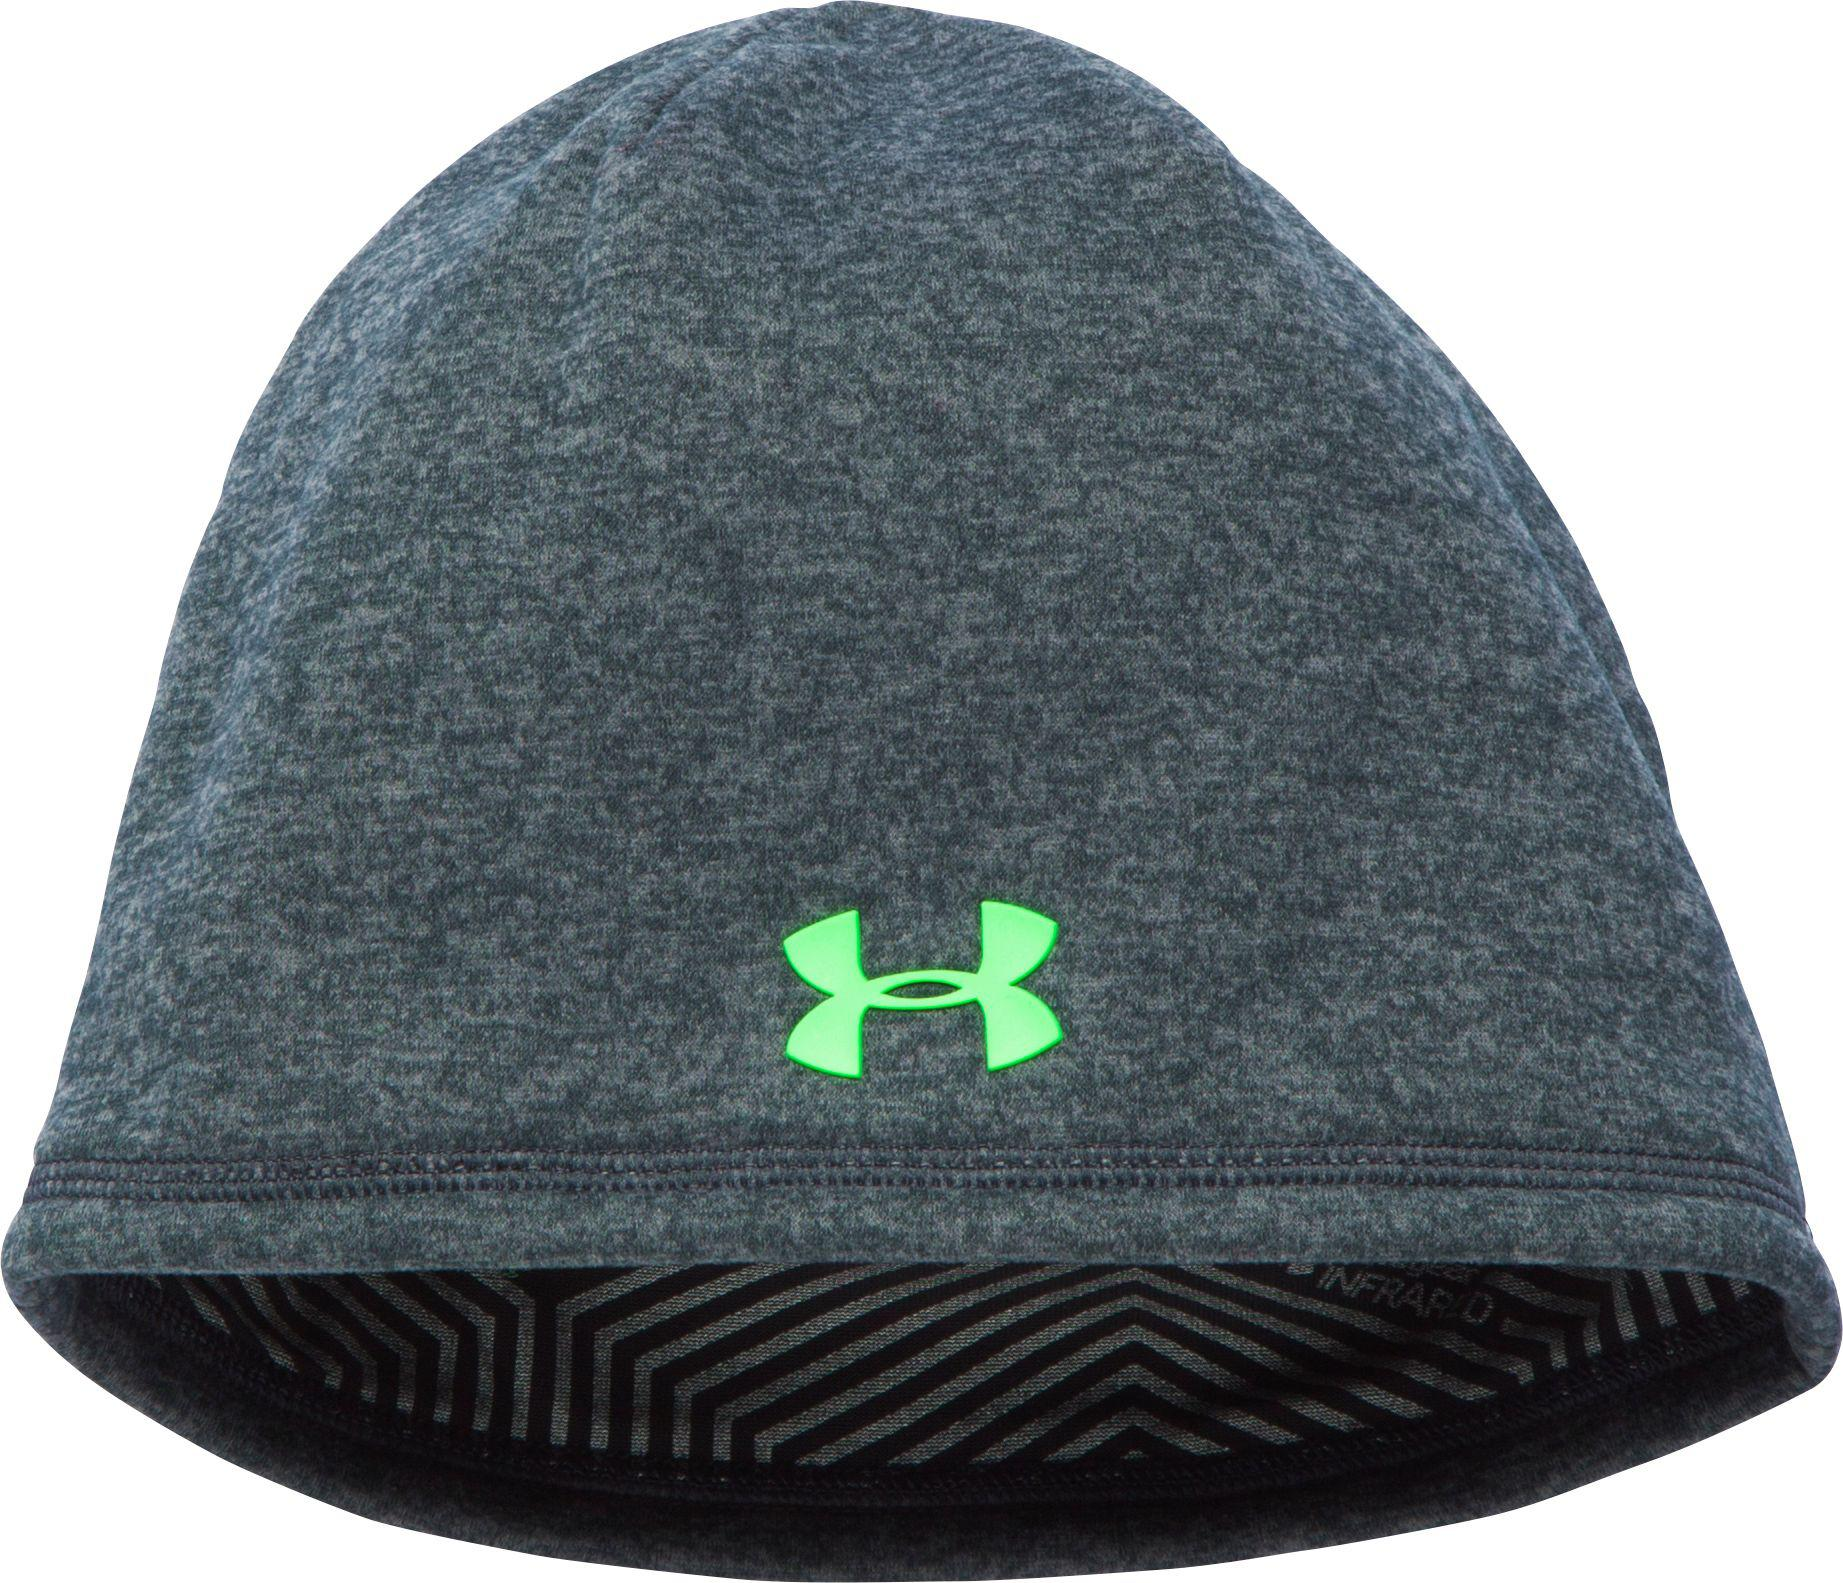 c50ef7249c1 Under Armour - Green Coldgear Infrared Elements Storm 2.0 Beanie for Men -  Lyst